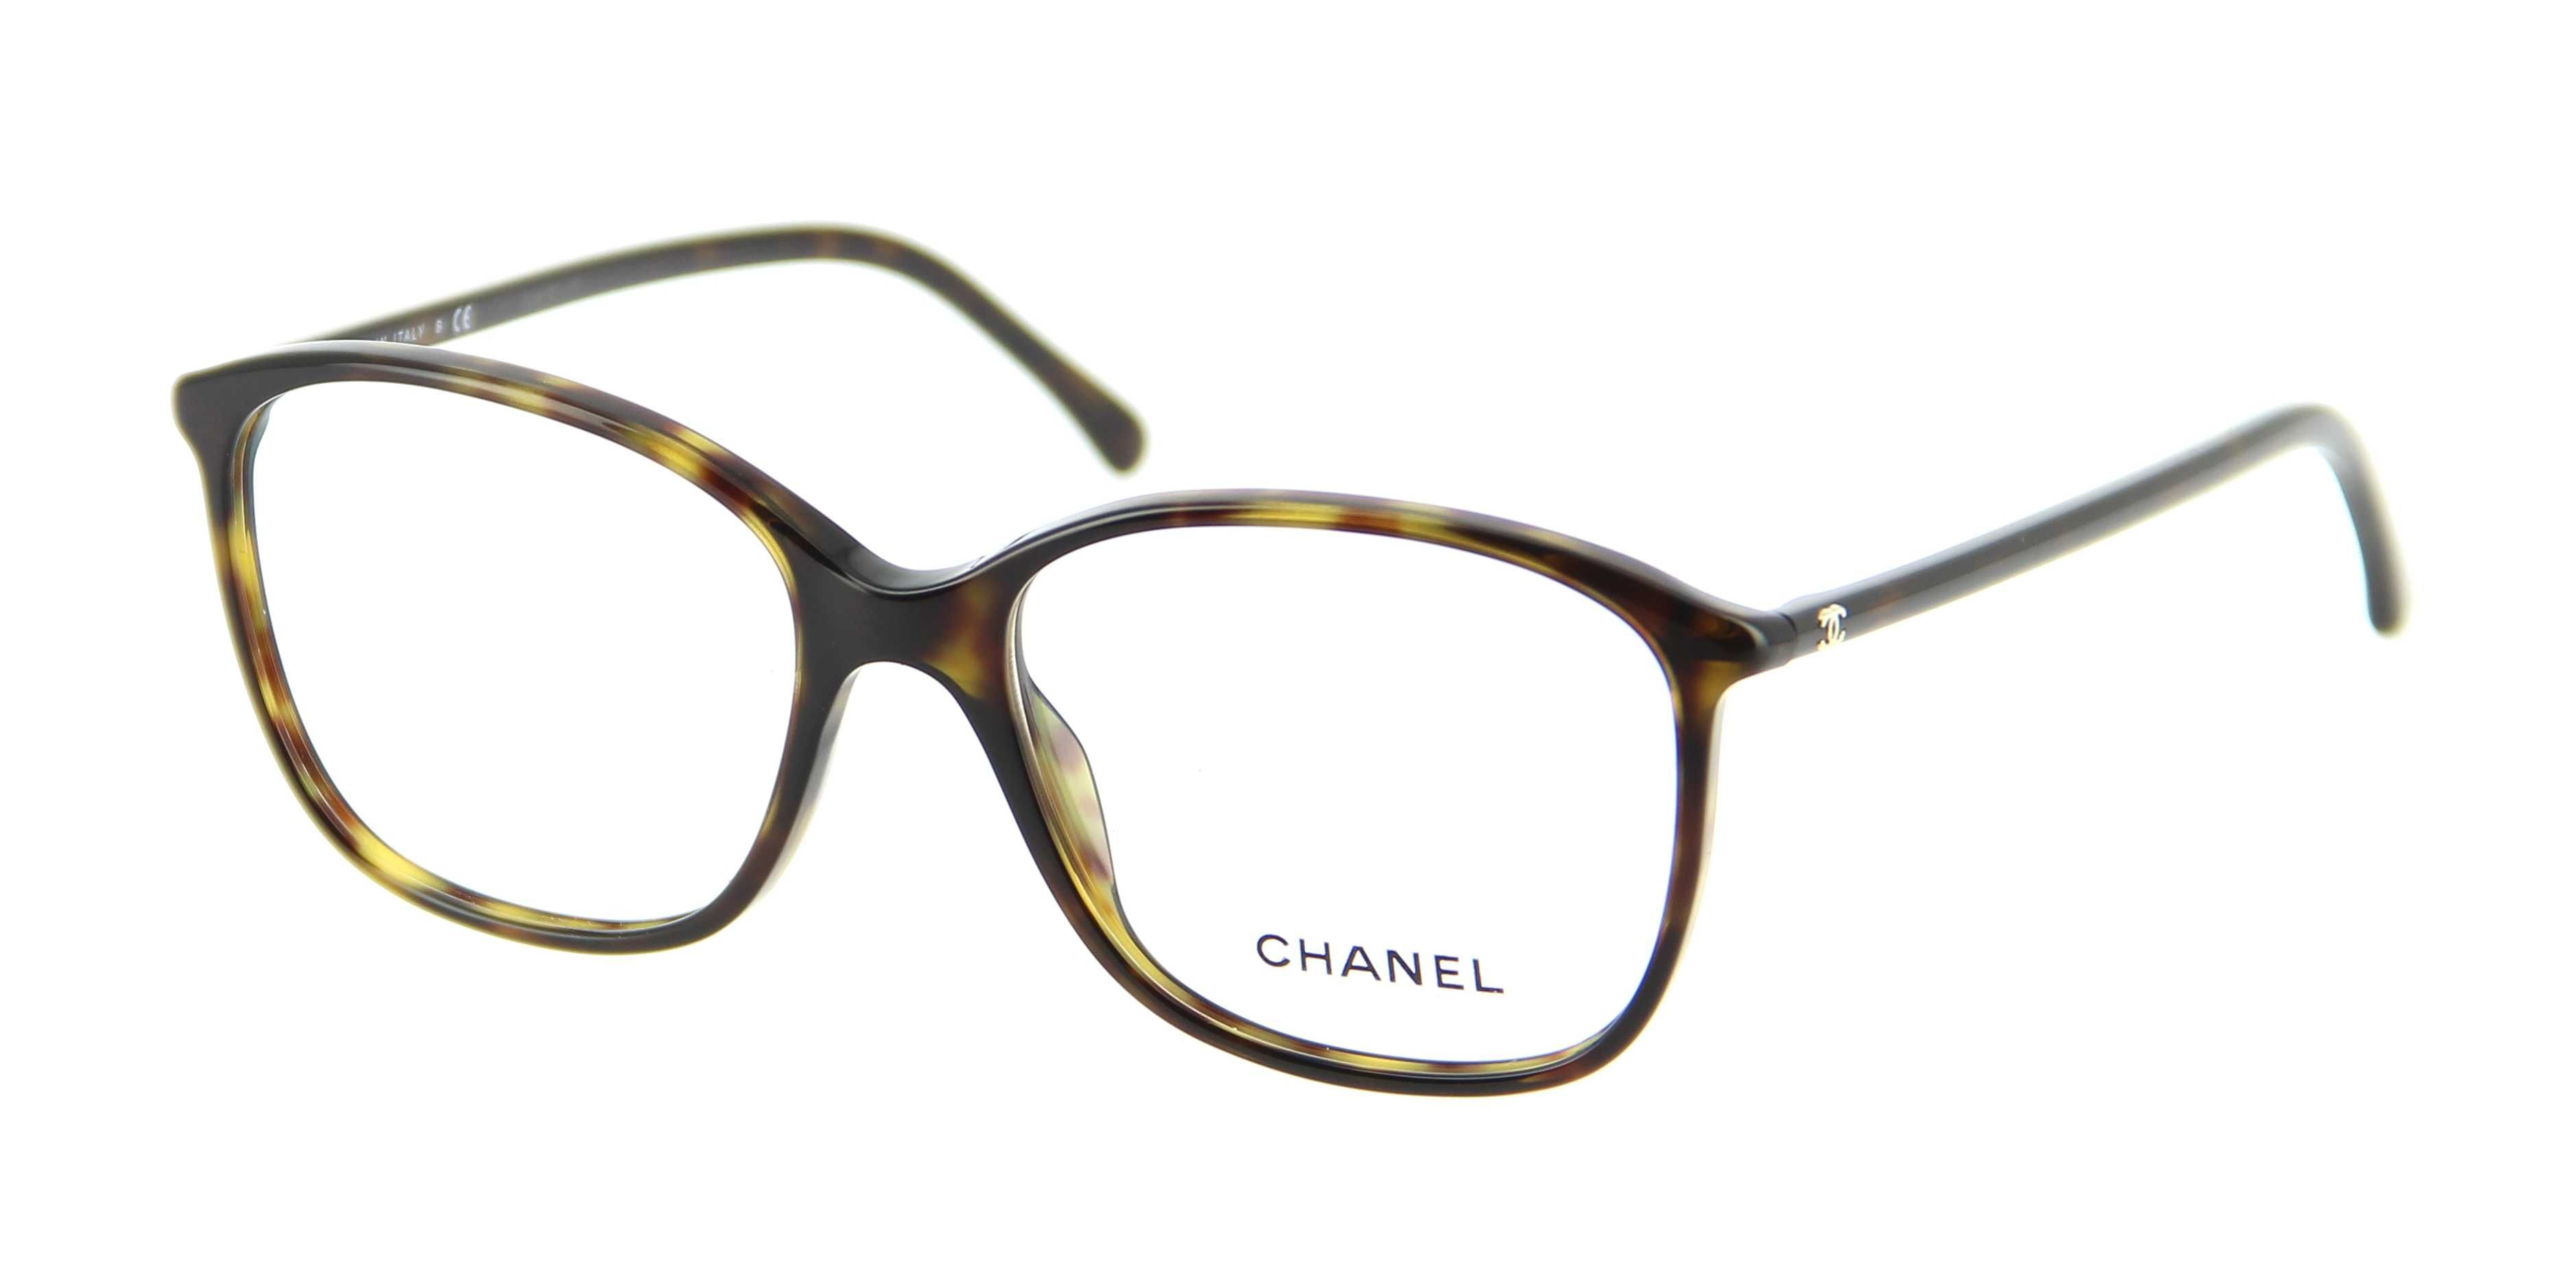 Brillen CHANEL CH 3219 C714 54/16 Damen Ecaille Quadratisch Vollrand ...